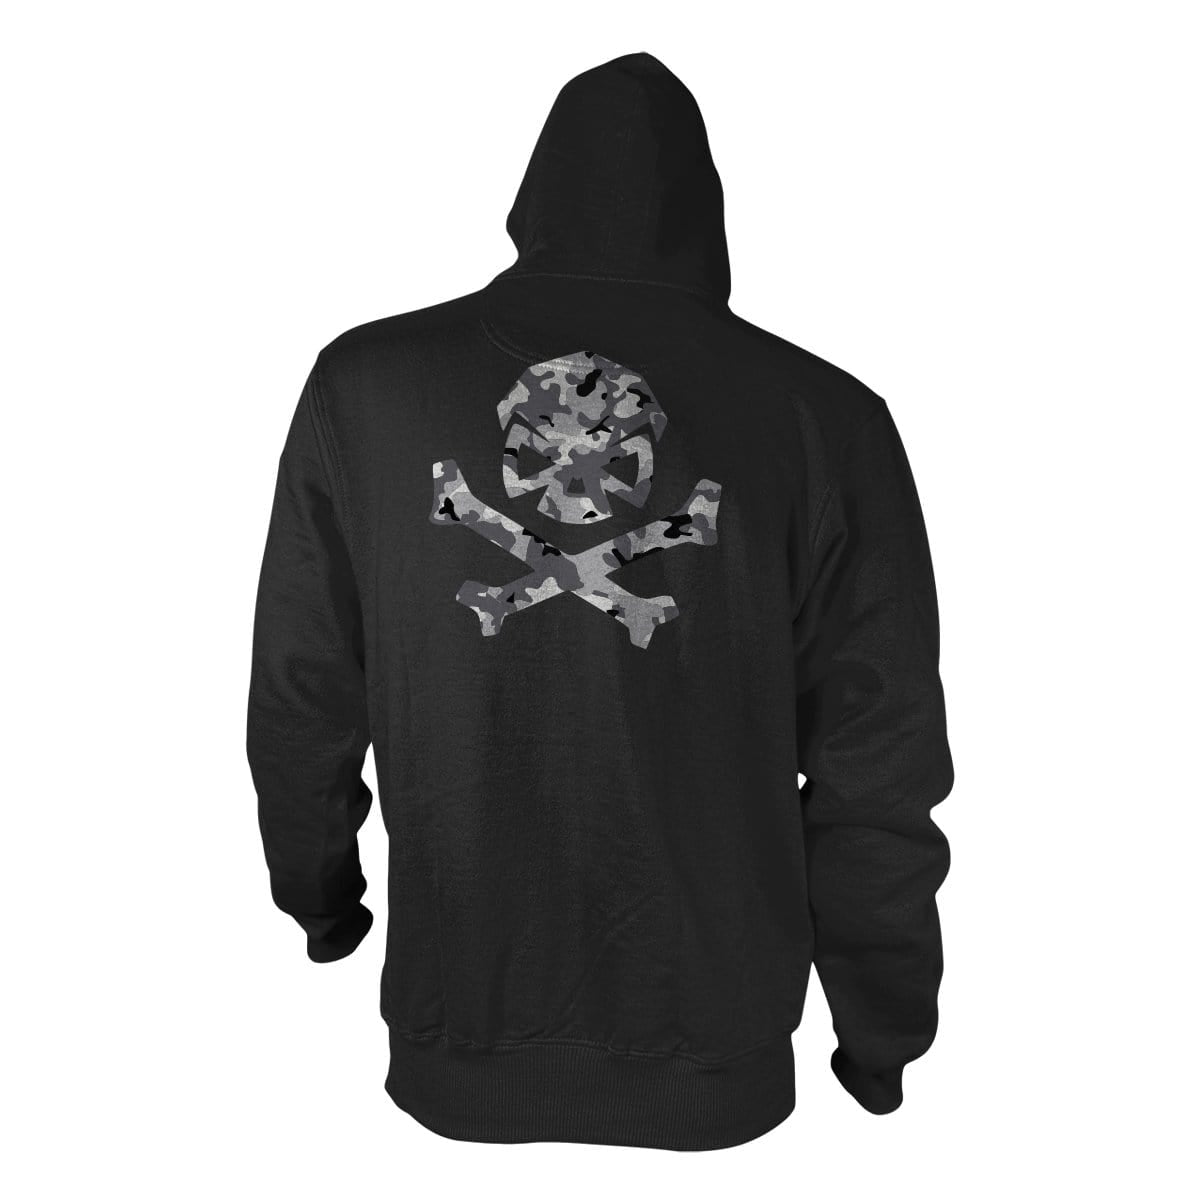 Multicam Logo Hoodie - Black/Grey_Multicam - Hoodies - Pipe Hitters Union